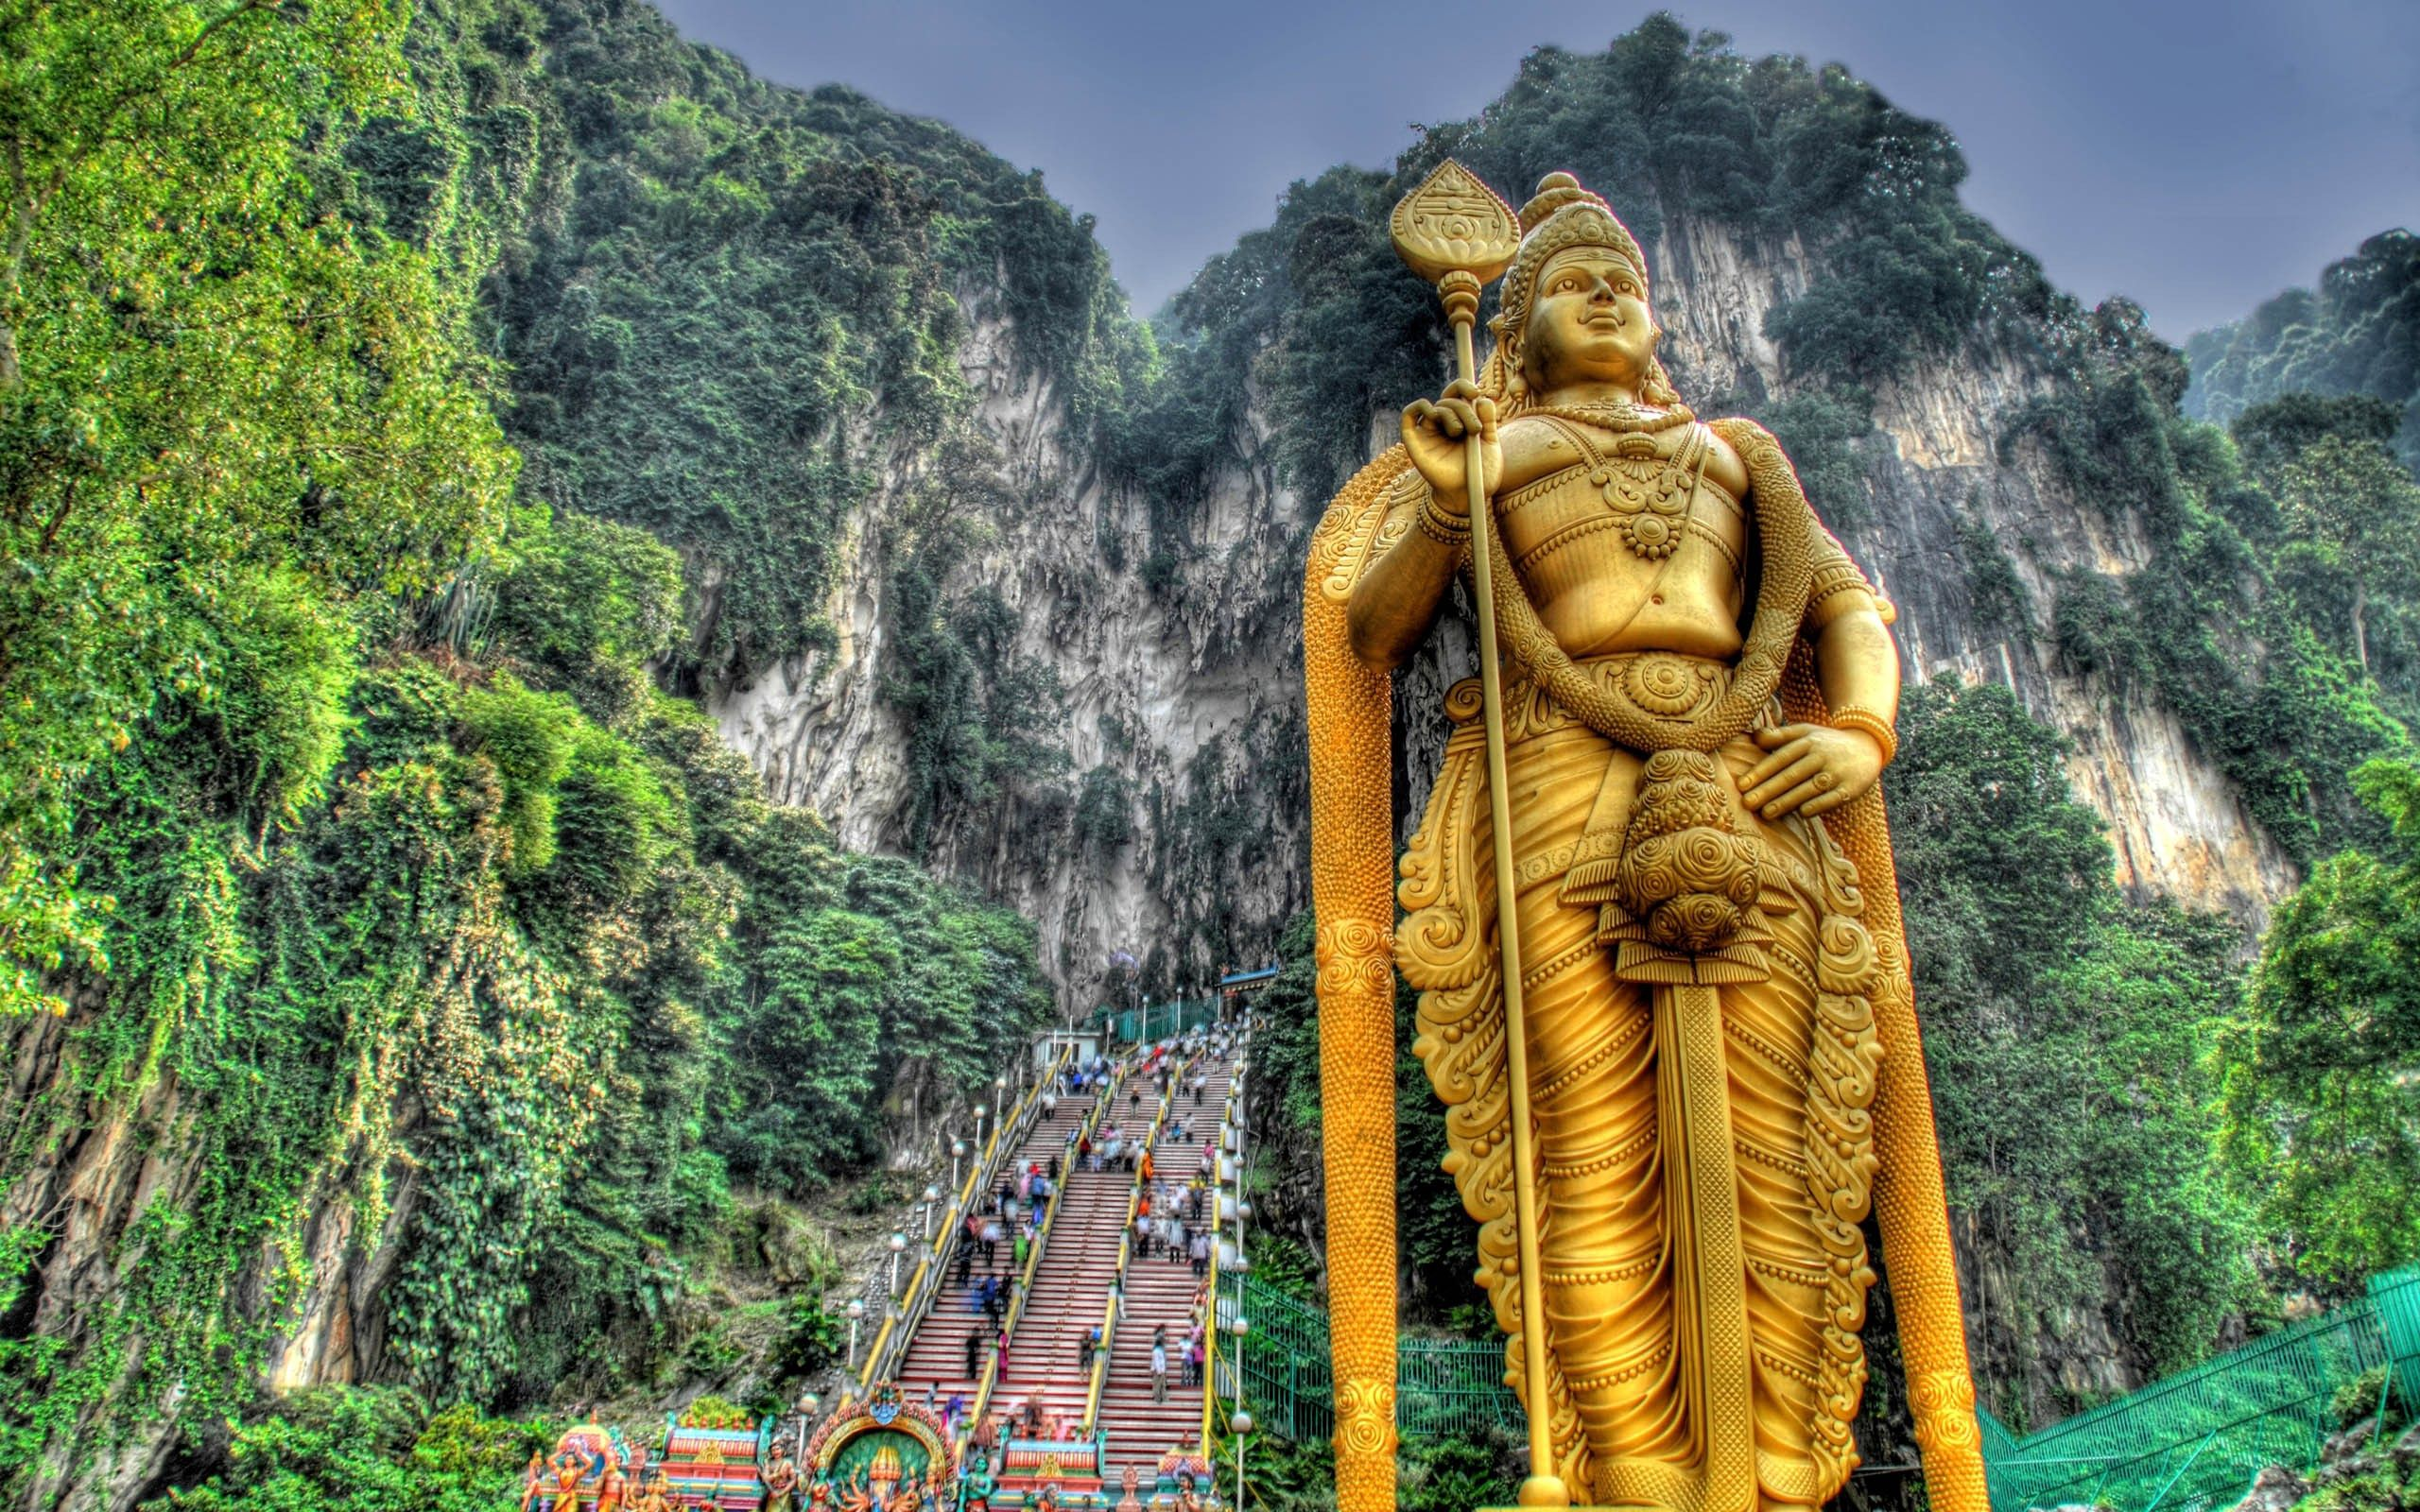 91718 download wallpaper Murugan, Malaysia, Statue, Stairs, Ladder, Elevation, People, Hdr, Cities screensavers and pictures for free